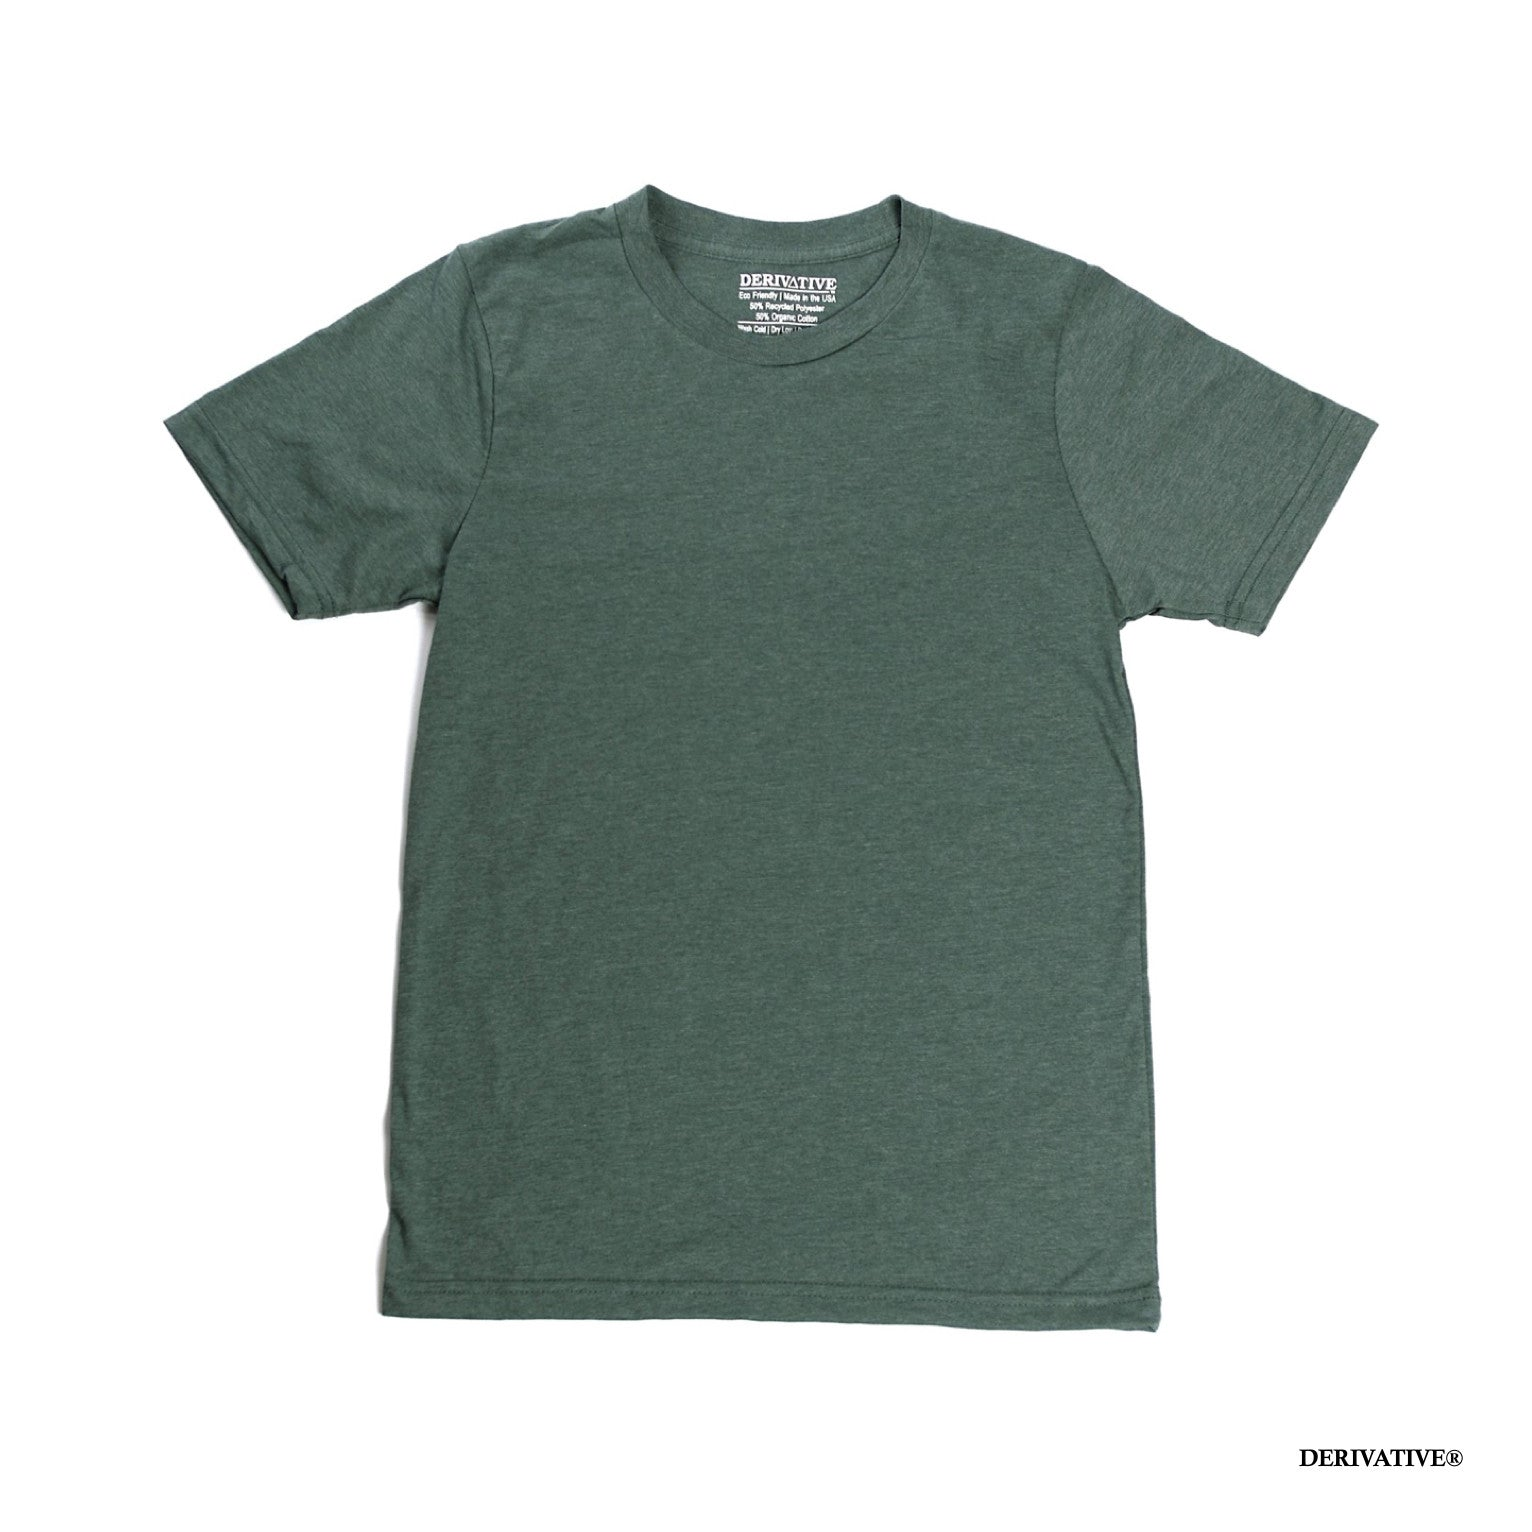 eaa88217a5 Organic Cotton & Recycled Polyester T-Shirts - Heather Green ...